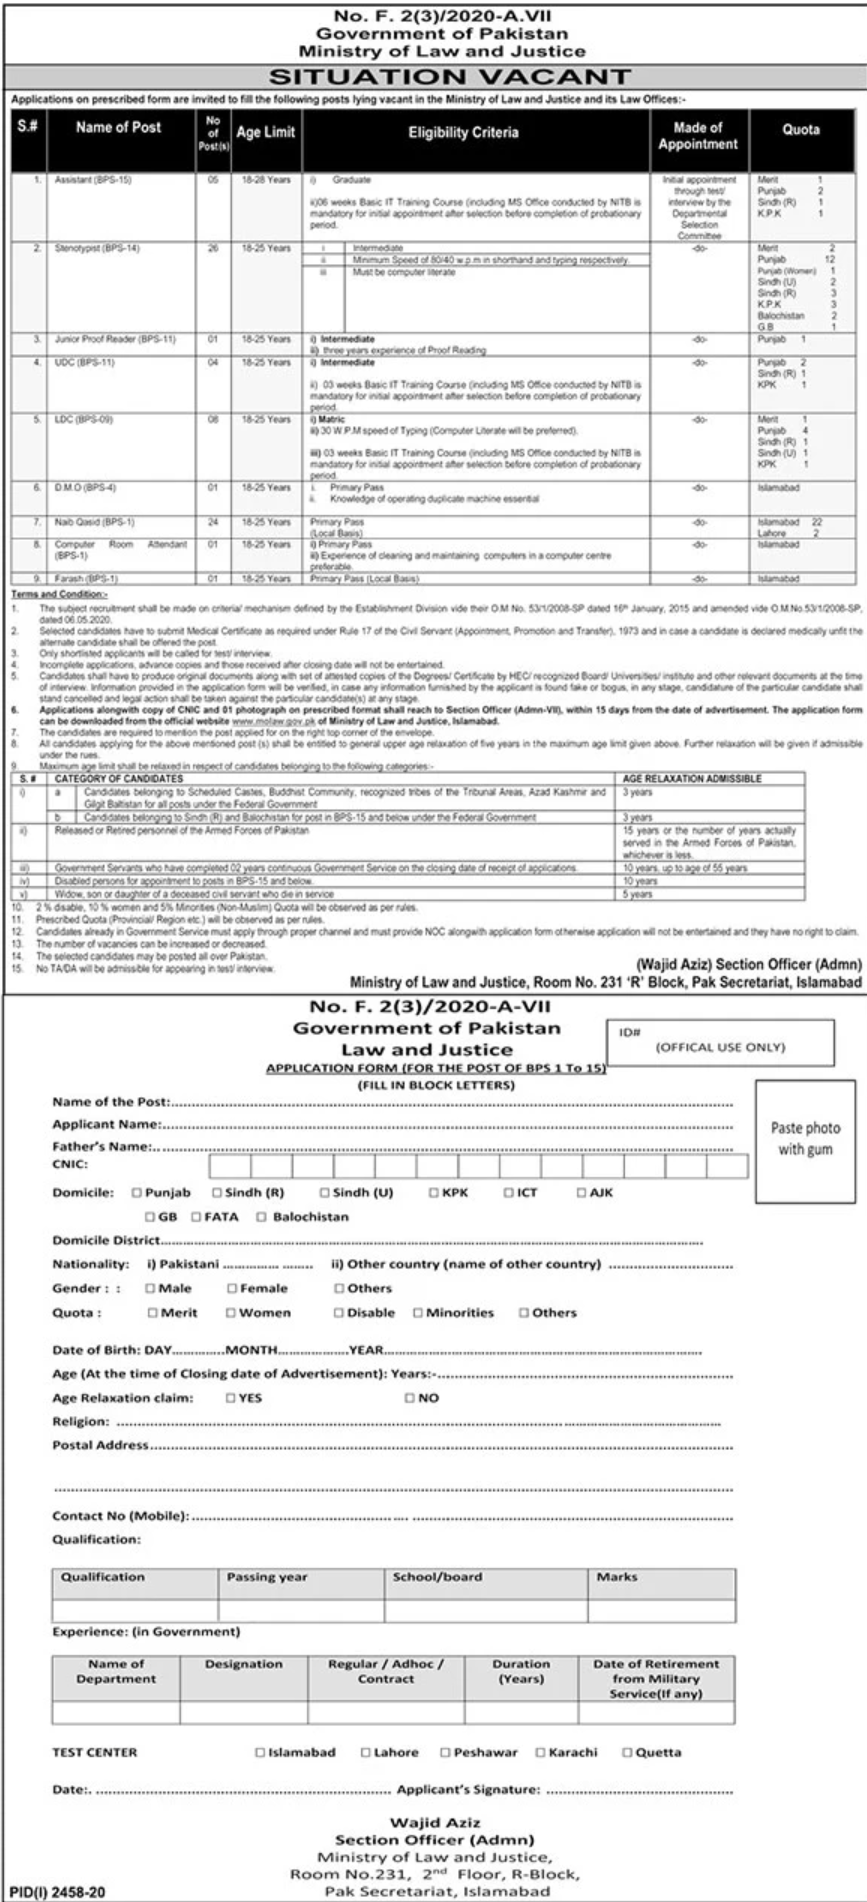 Government of Pakistan Ministry of Law and Justice Jobs November 2020